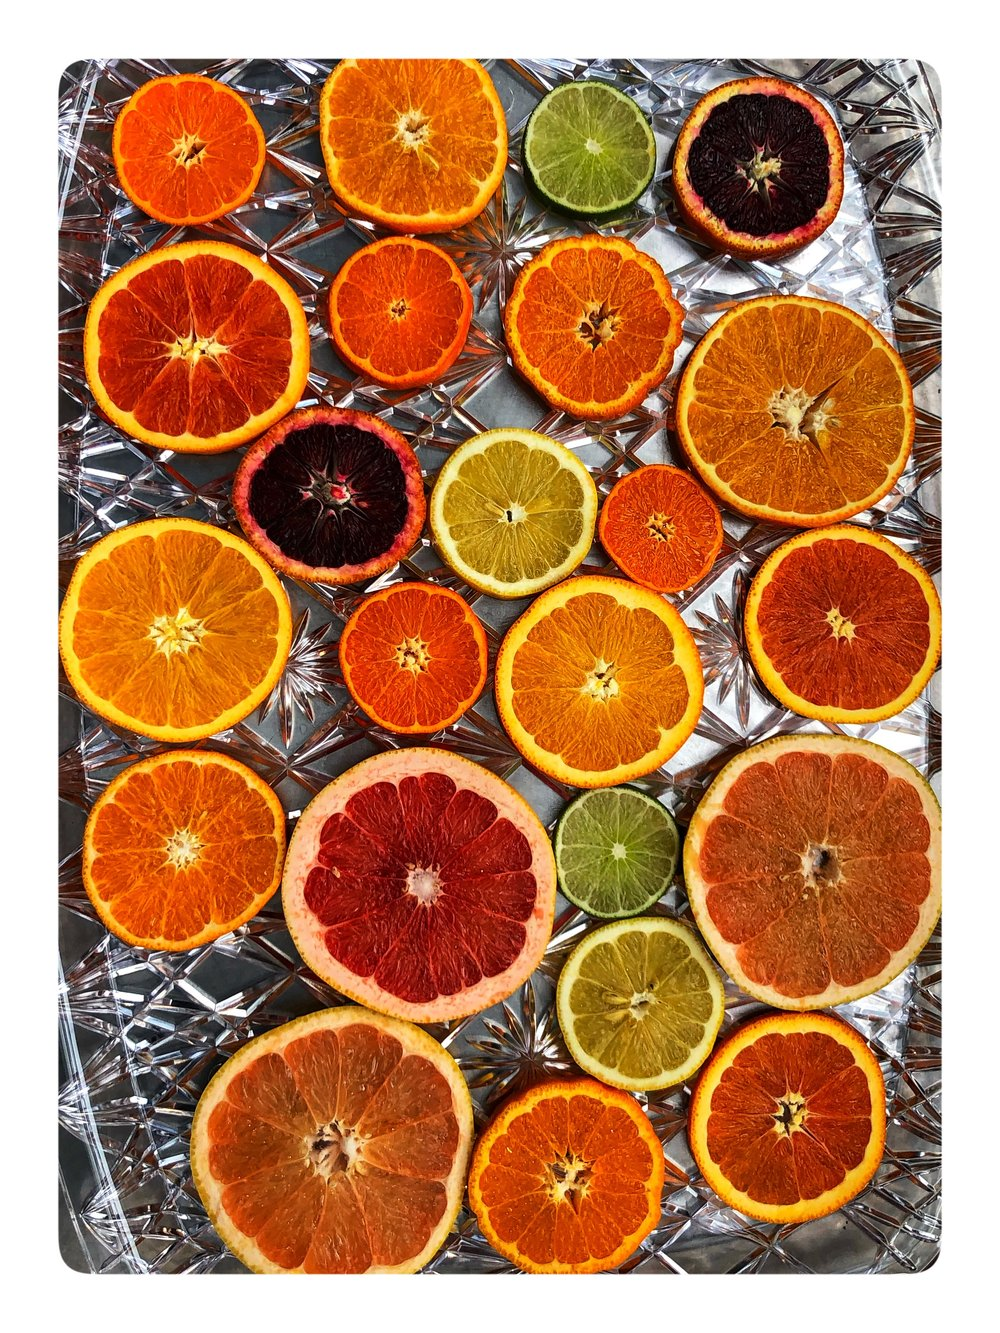 Now is the time to try citrus! We have more than a dozen varieties in our store, including delicious Blood Oranges and Gold Nugget mandarins.